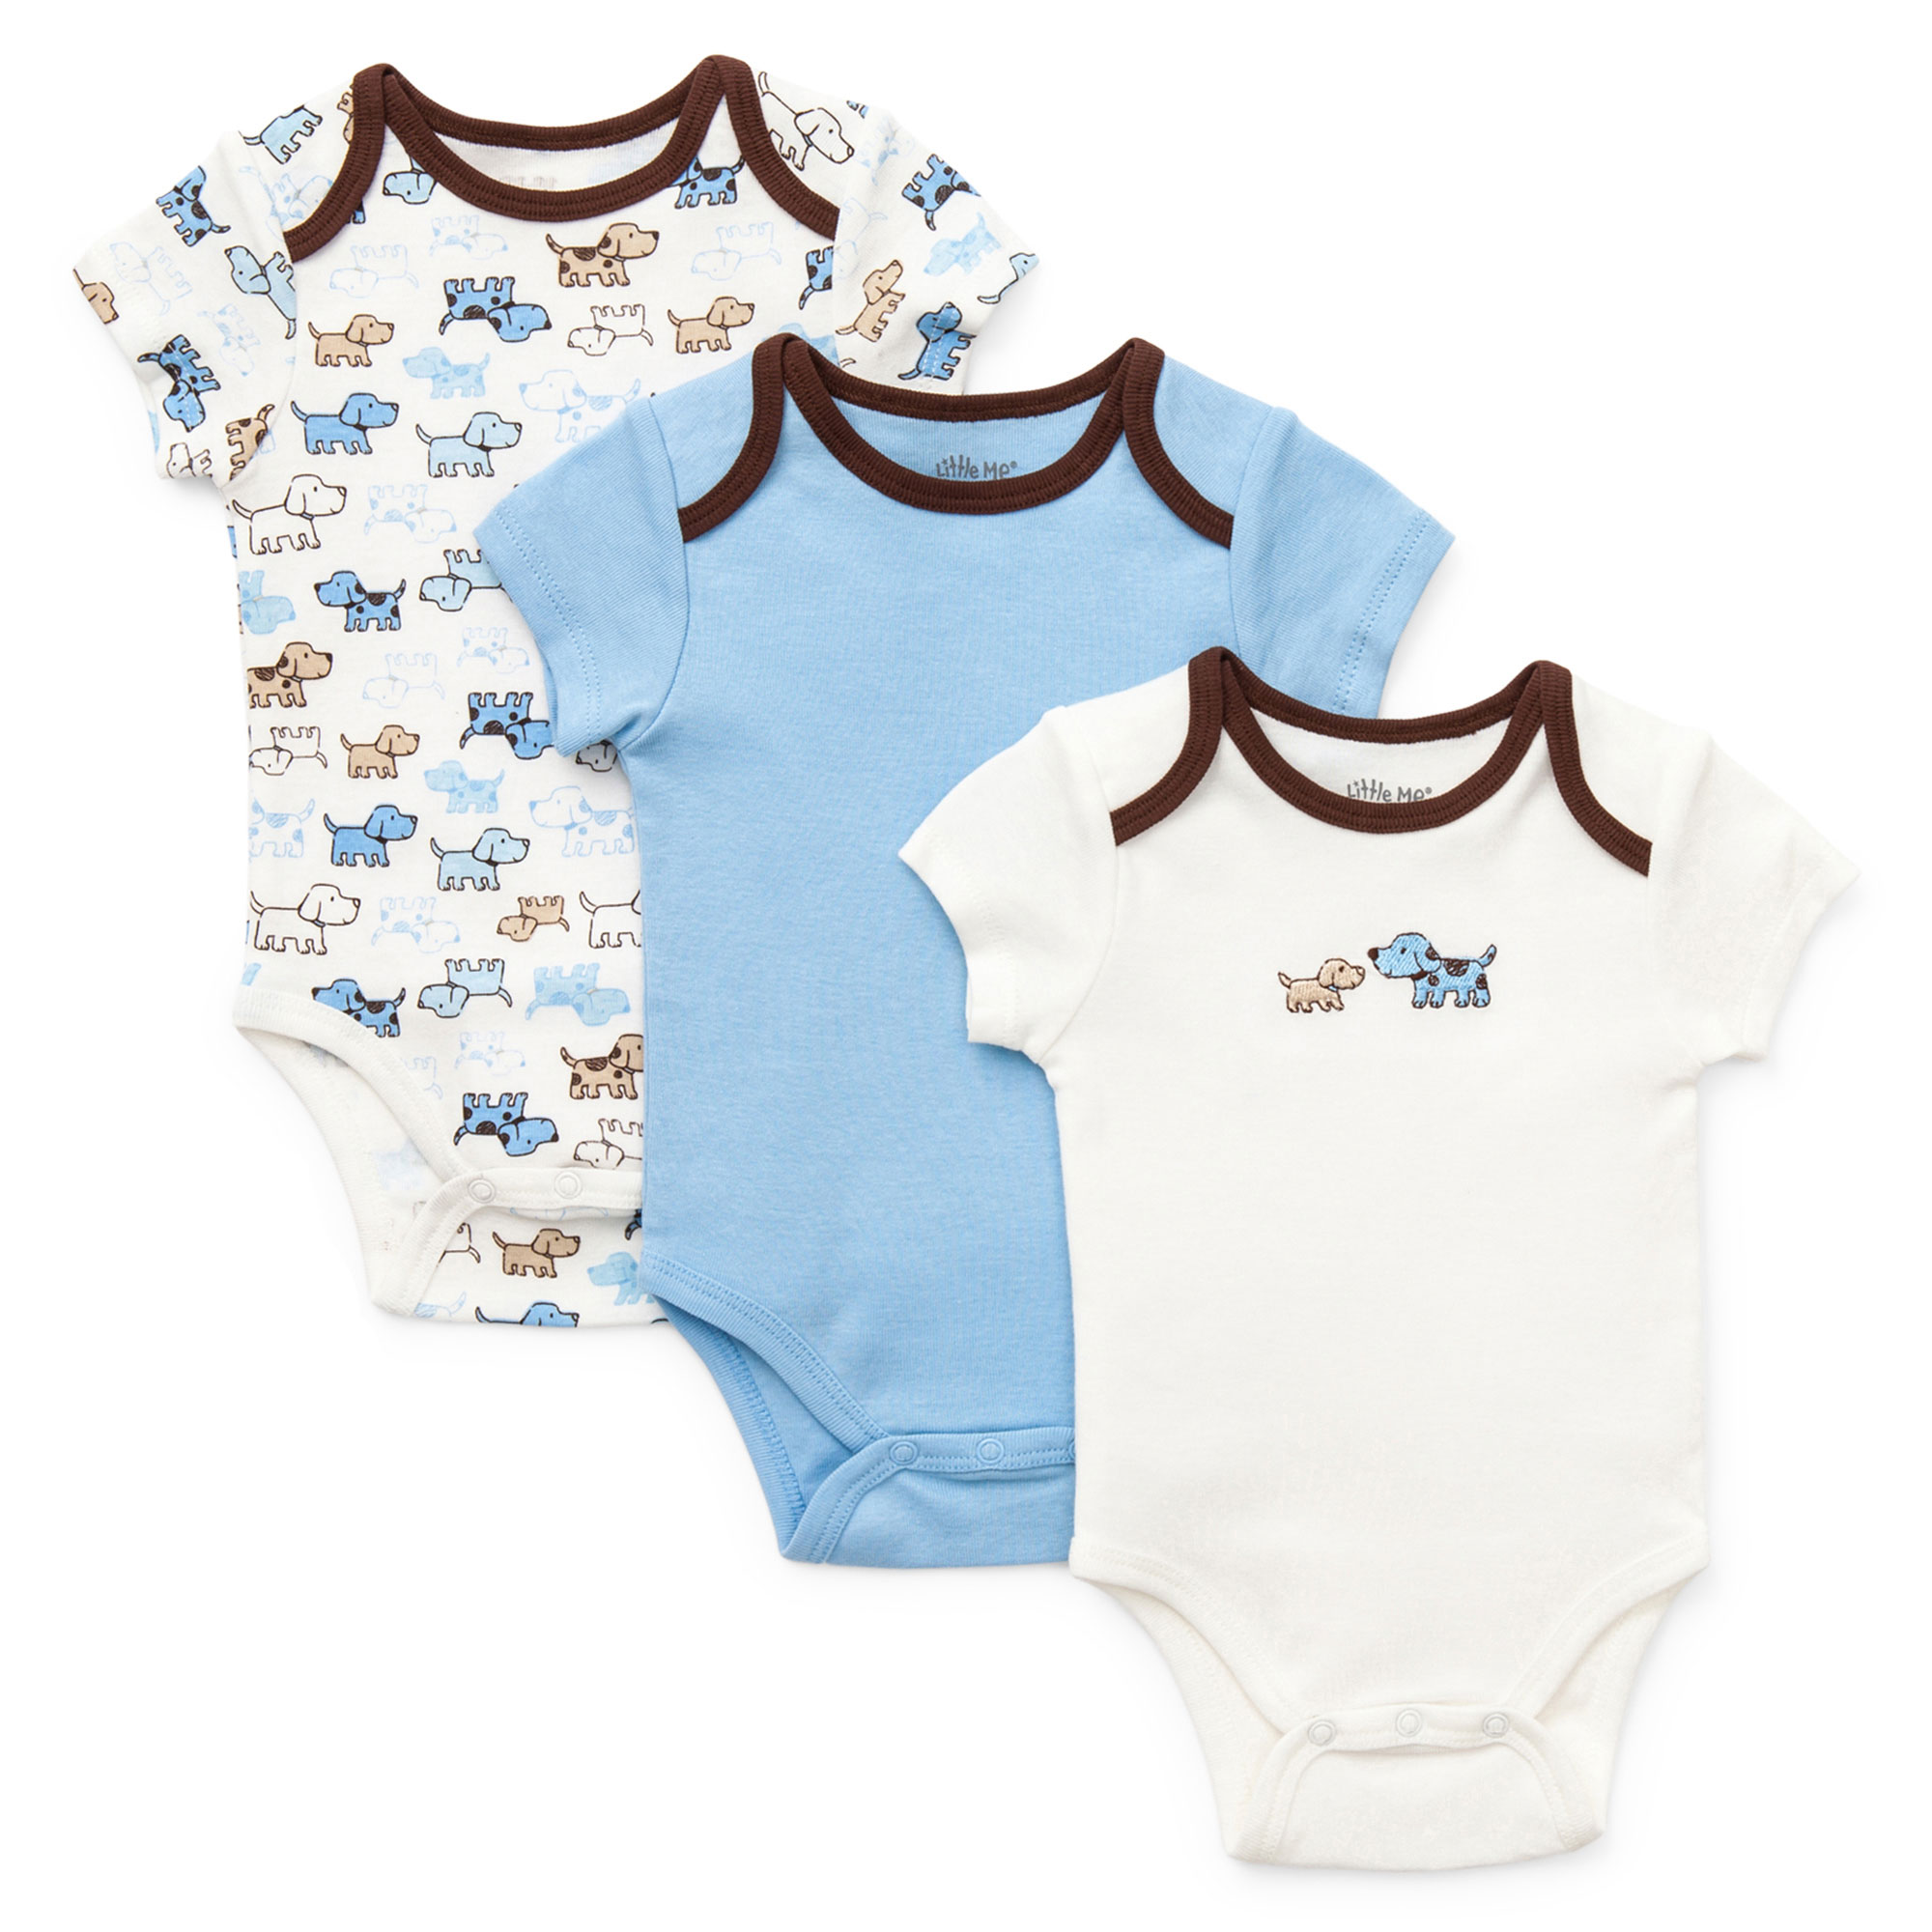 Little Me Baby Cute Puoppies Puppy Dog Print and Solid 3 Pack of Short Sleeve Baby Bodysuit Creepers For Boys - Blue, White, and Brown- 6 Months